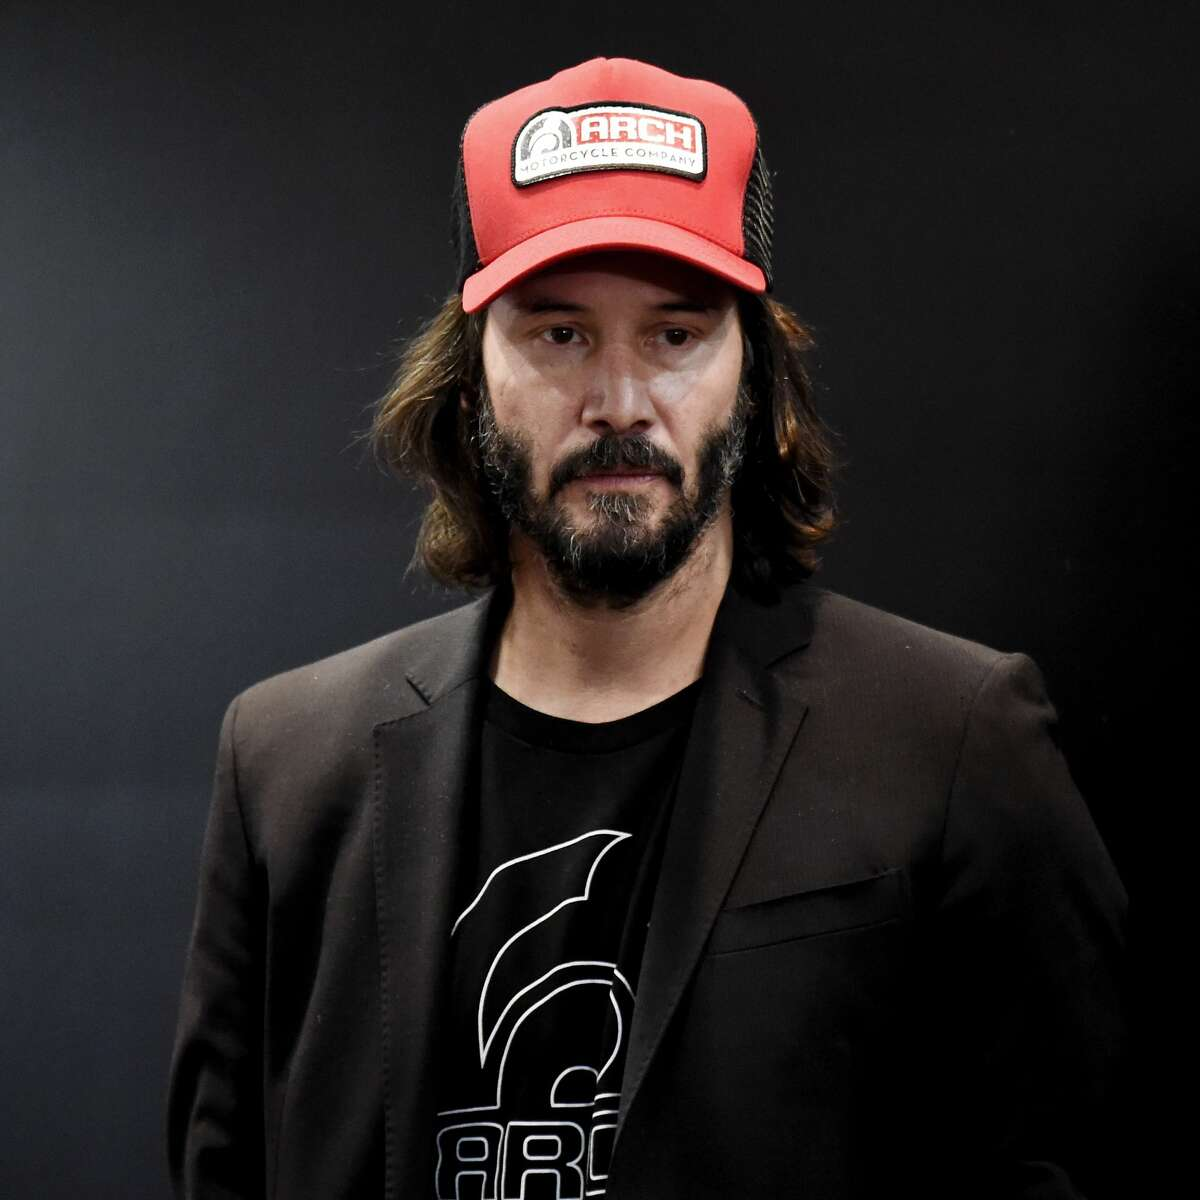 Keanu Reeves attends Arch press conference at EICMA 2017, the International Motorcycle Fair, on November 8, 2017 in Milan, Italy.